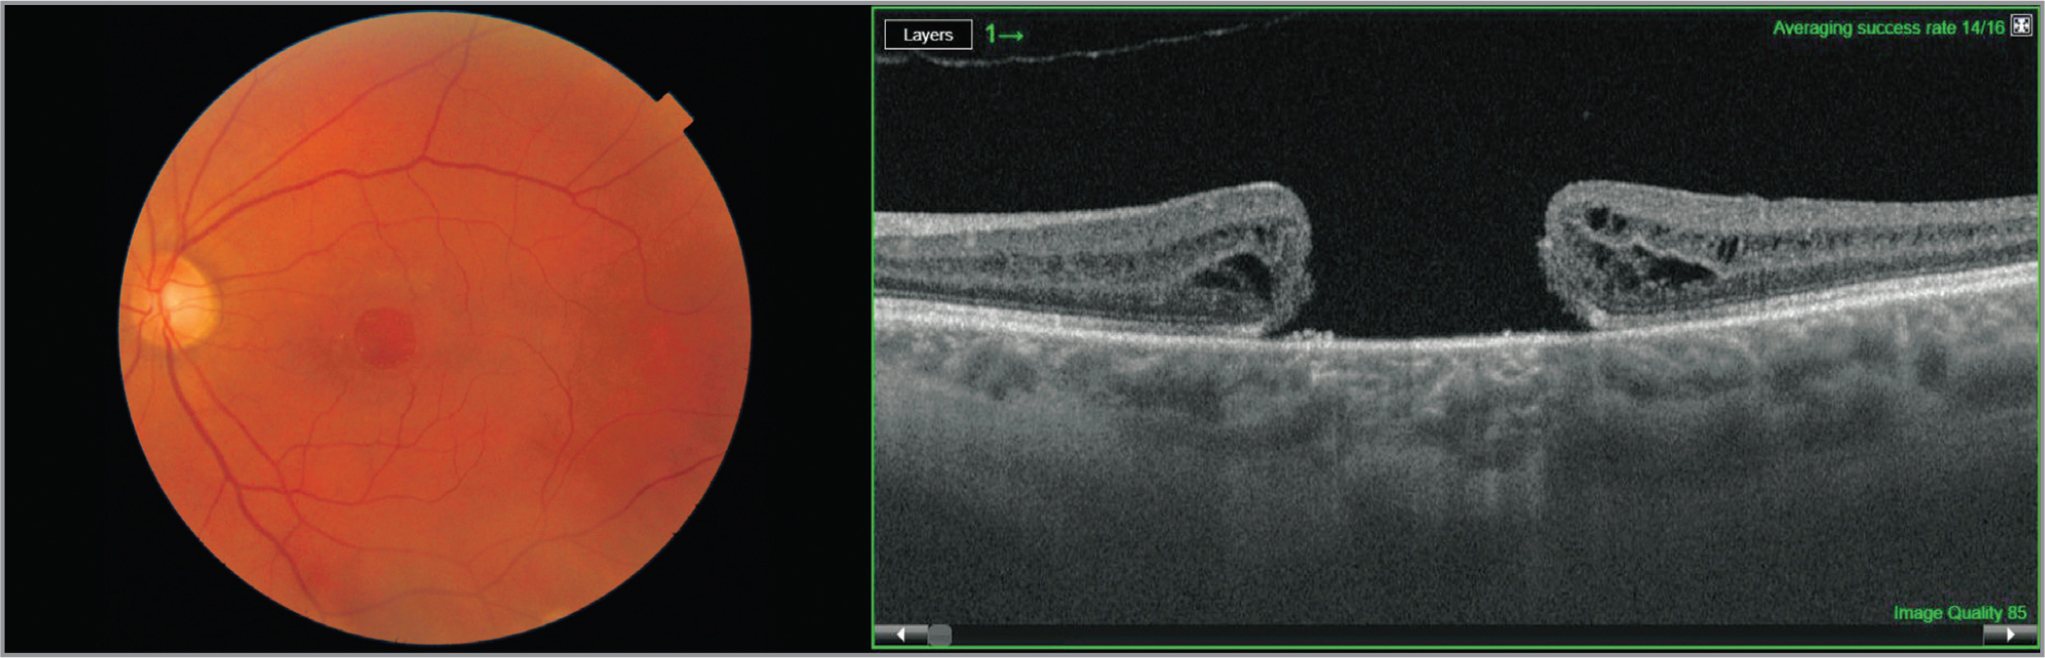 (a) Native fundus photo at the time of presentation. Macular hole (MH): the apex measurement of 700 μm and the base measurement of 900 μm; best-corrected visual acuity (BCVA): 20/200. (b) Optical coherence tomography scan at the time of presentation. MH: the apex measurement of 700 μm and the base measurement of 900 μm; BCVA 20/200.